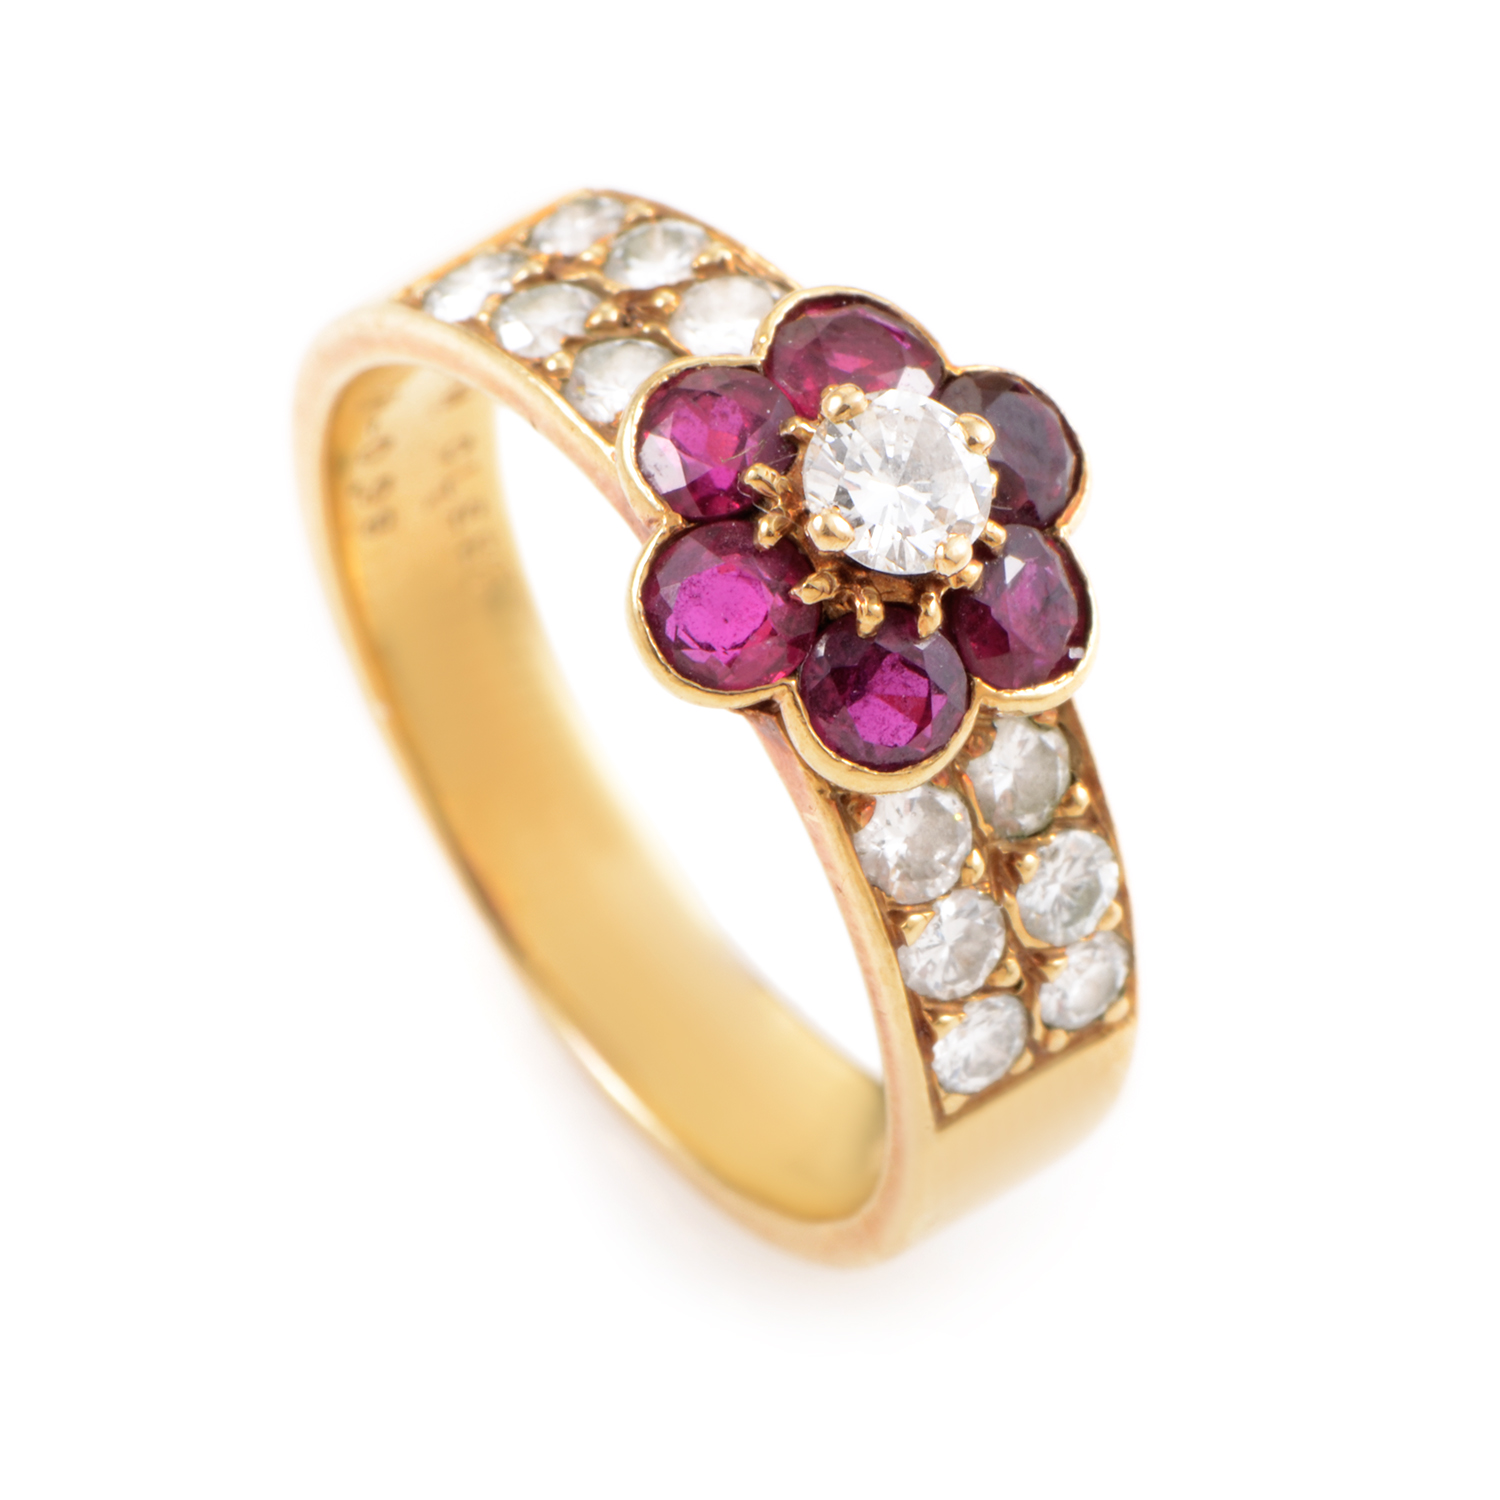 Van Cleef & Arpels Fleurette 18K Yellow Gold Diamond & Ruby Flower Ring